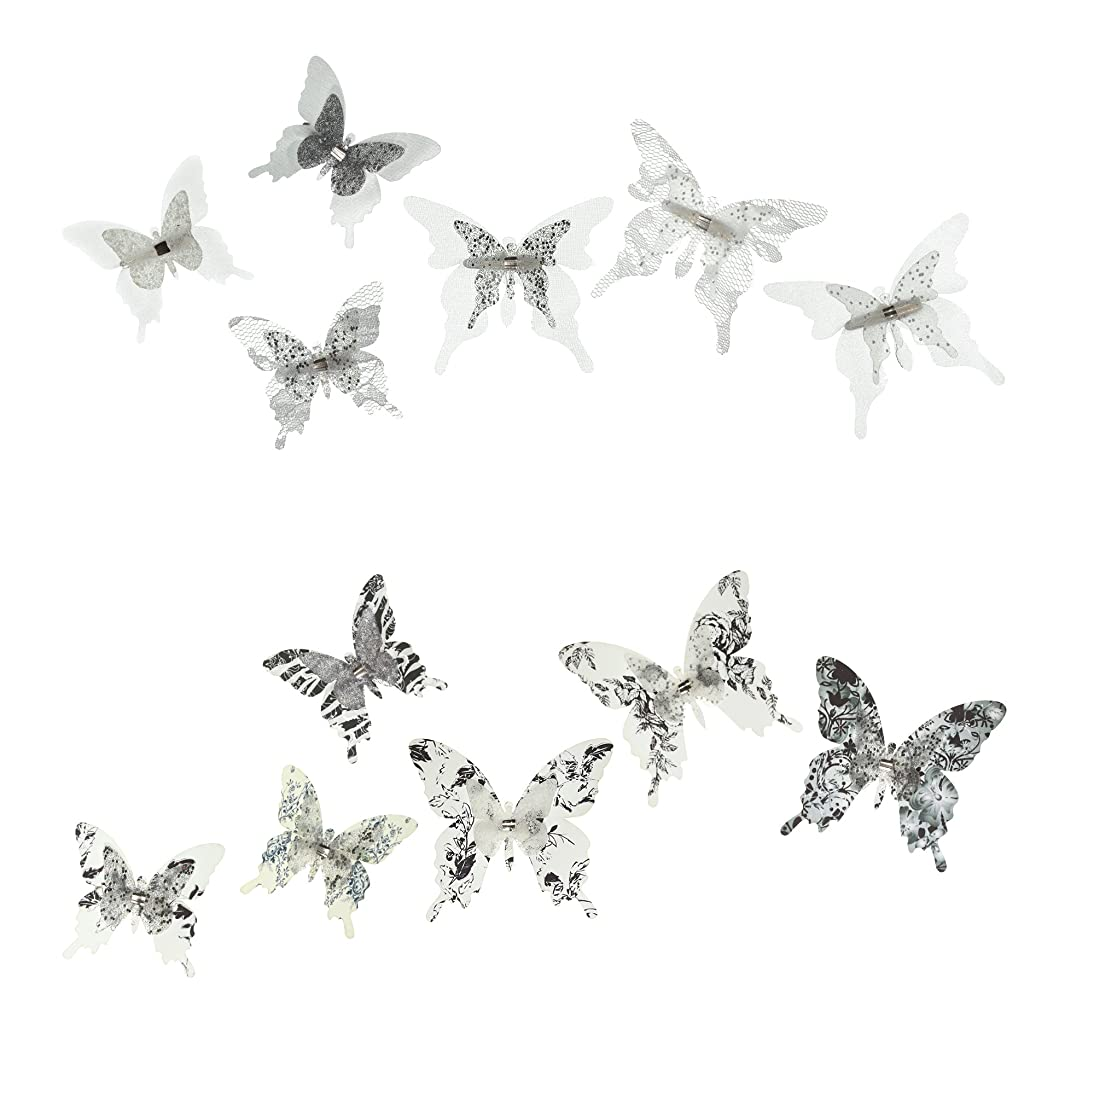 Roser Life Craft Butterflies?Decorative Artificial Butterfly Clips?Silk Fabric Butterfly Decorations?Floral Butterflies?Handmade Vintage Ornament?Party Garden Outdoor Decor Black White (Pack of 12)